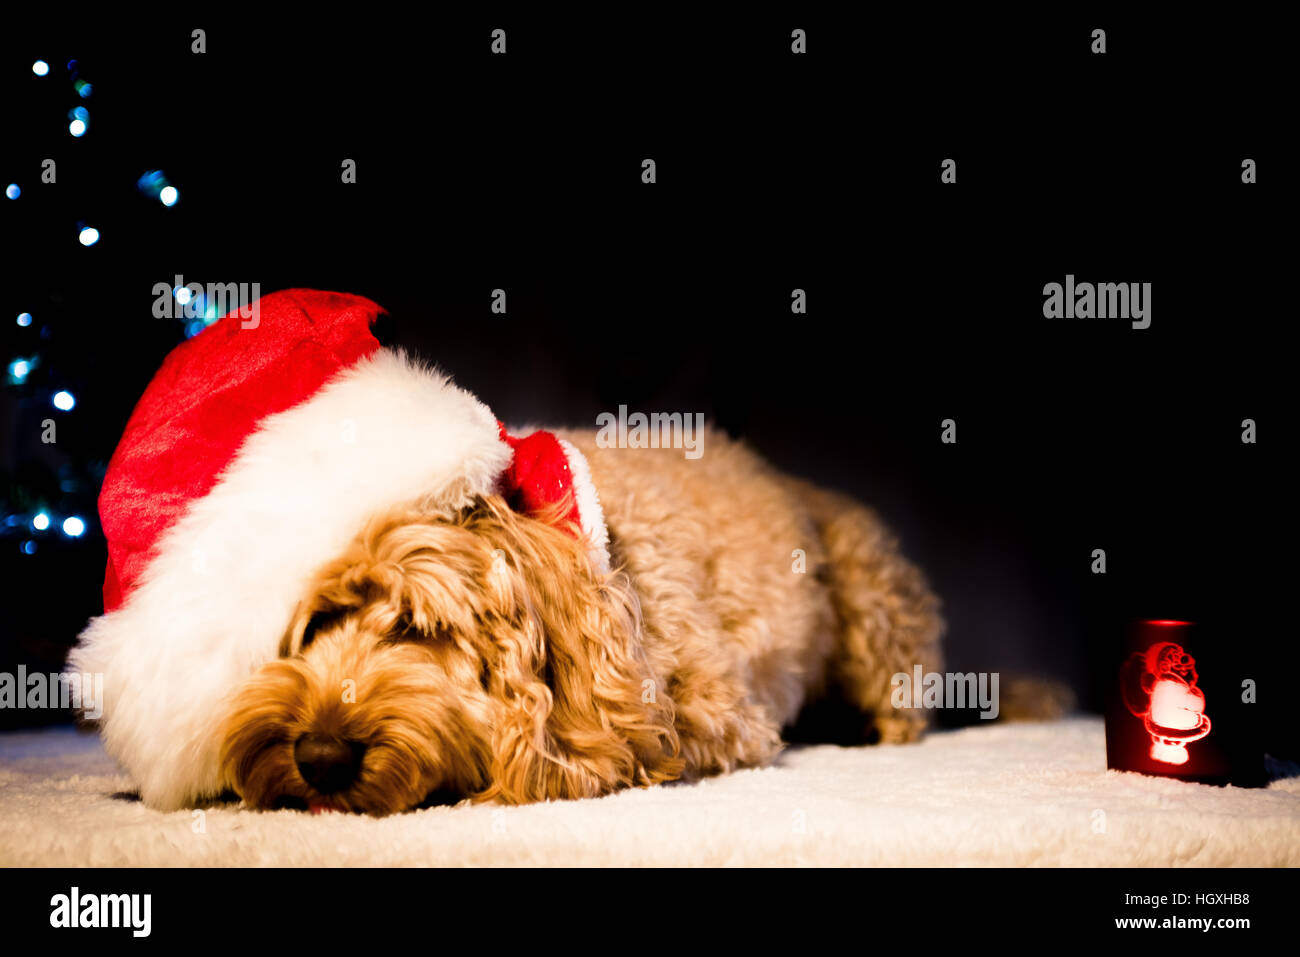 Cute dog looking hungover wearing christmas party hat - Stock Image